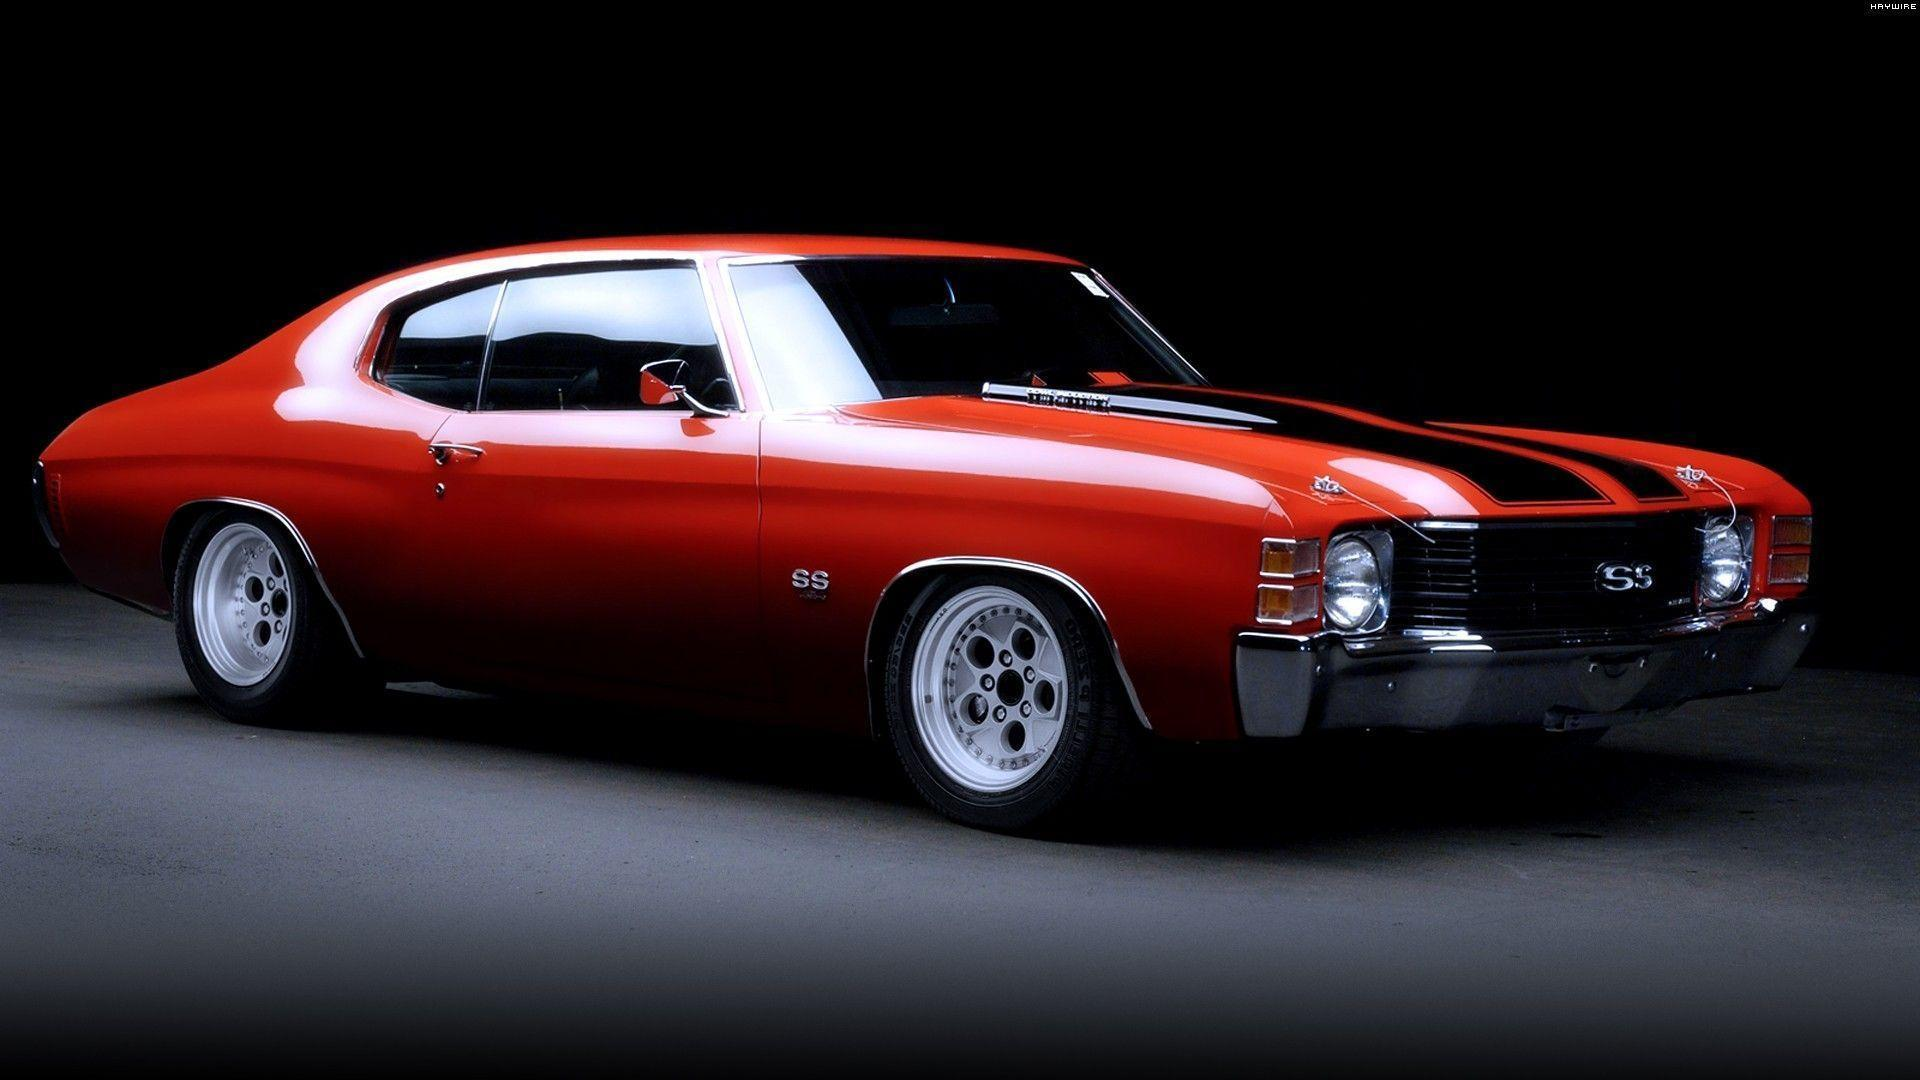 new wallpapers muscle car - photo #17